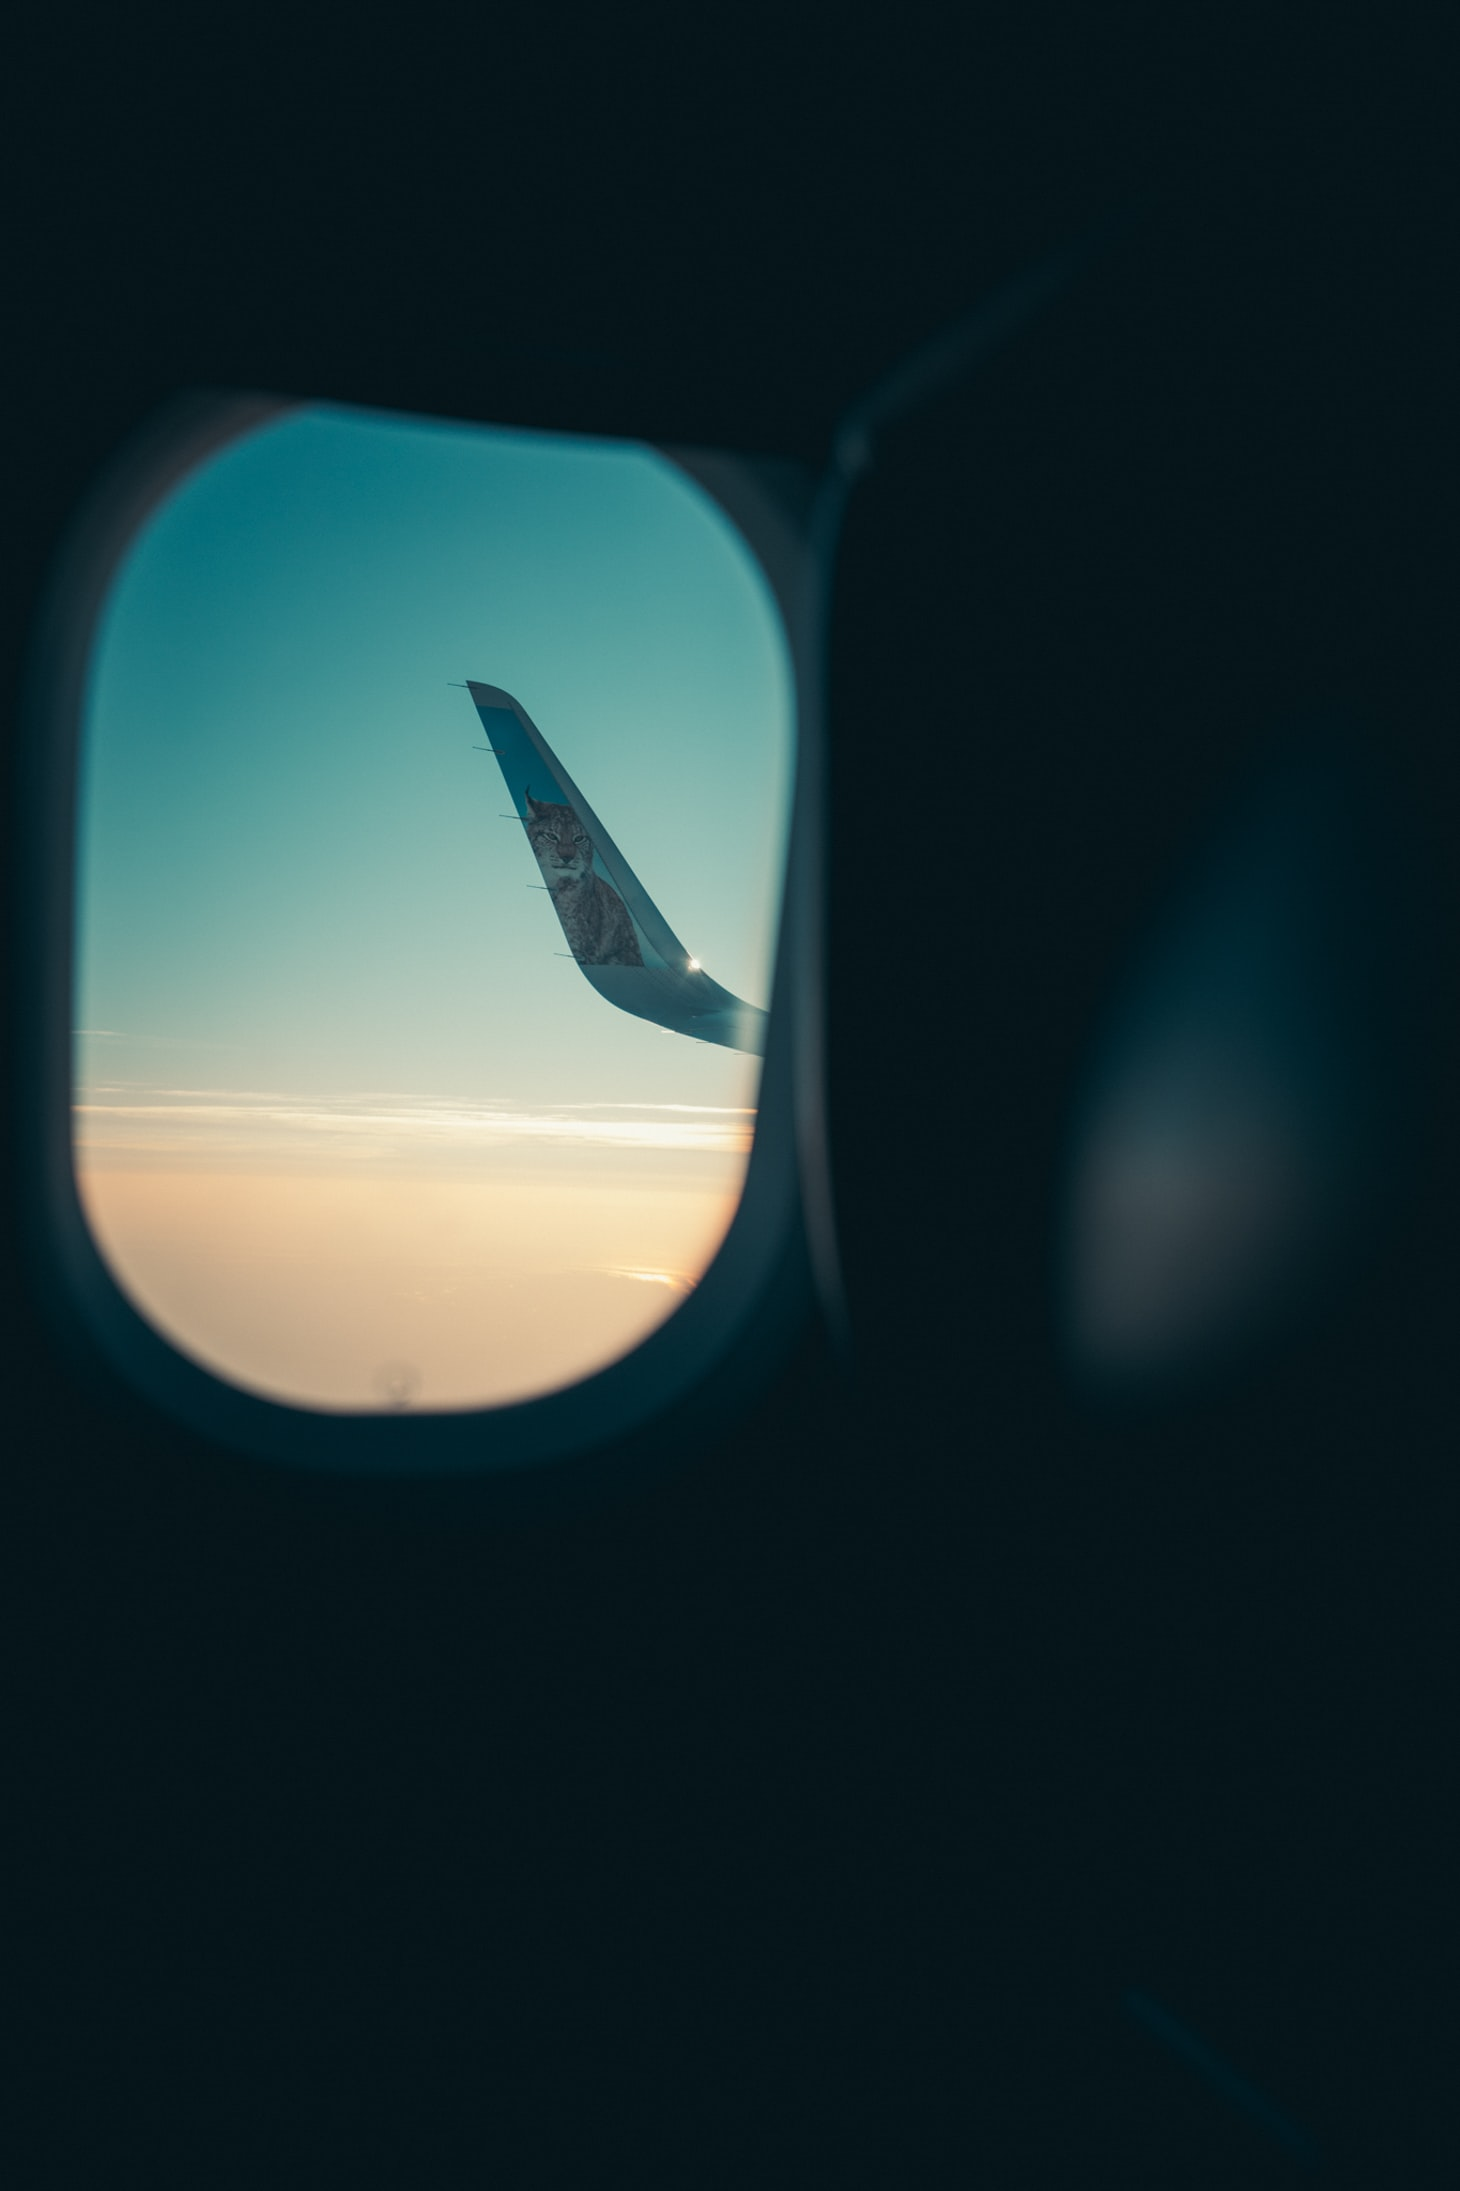 photography of airplane